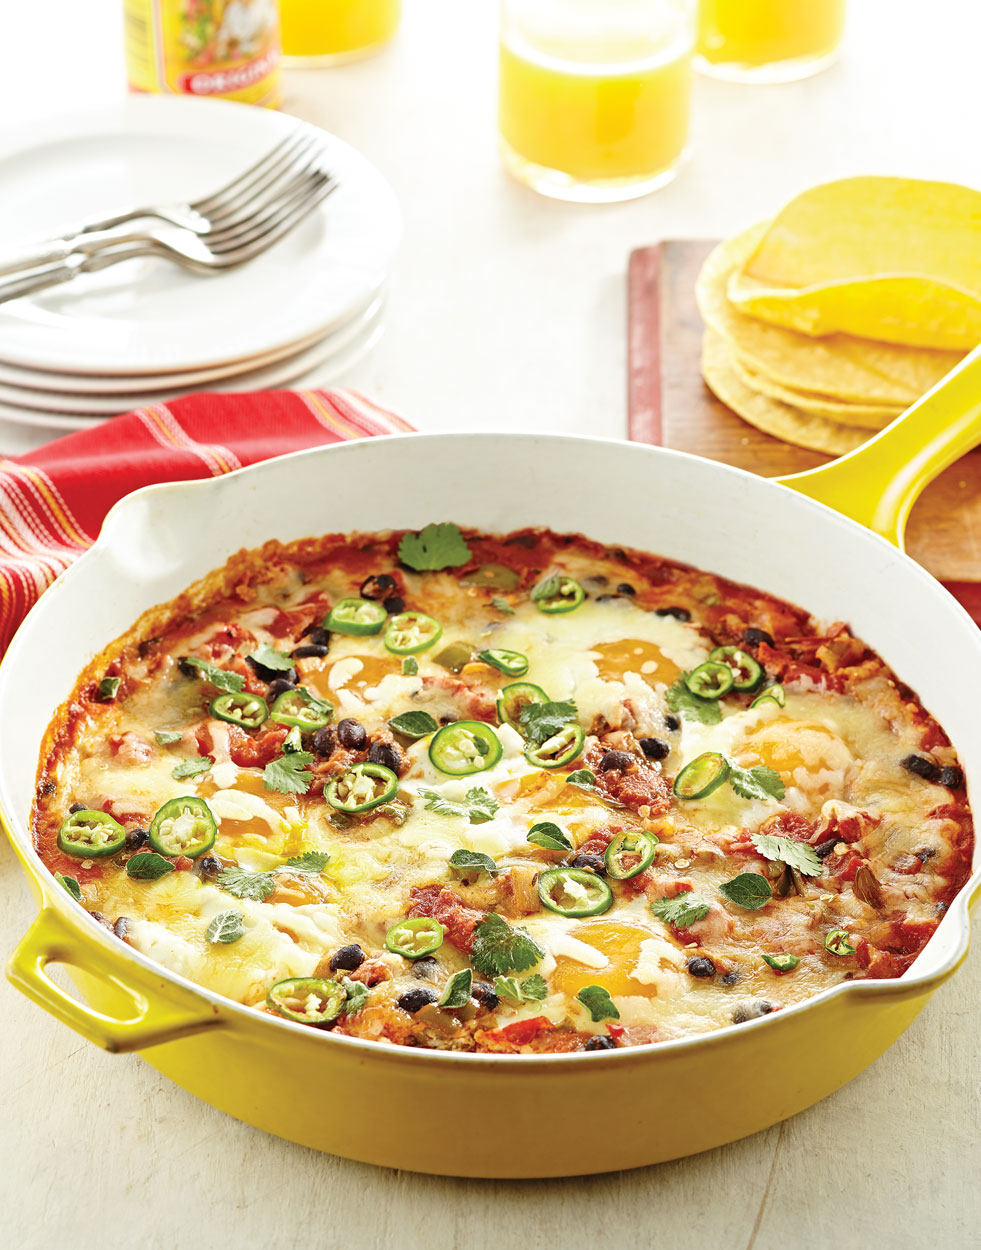 Eggs in Tomato Sauce with Black Beans